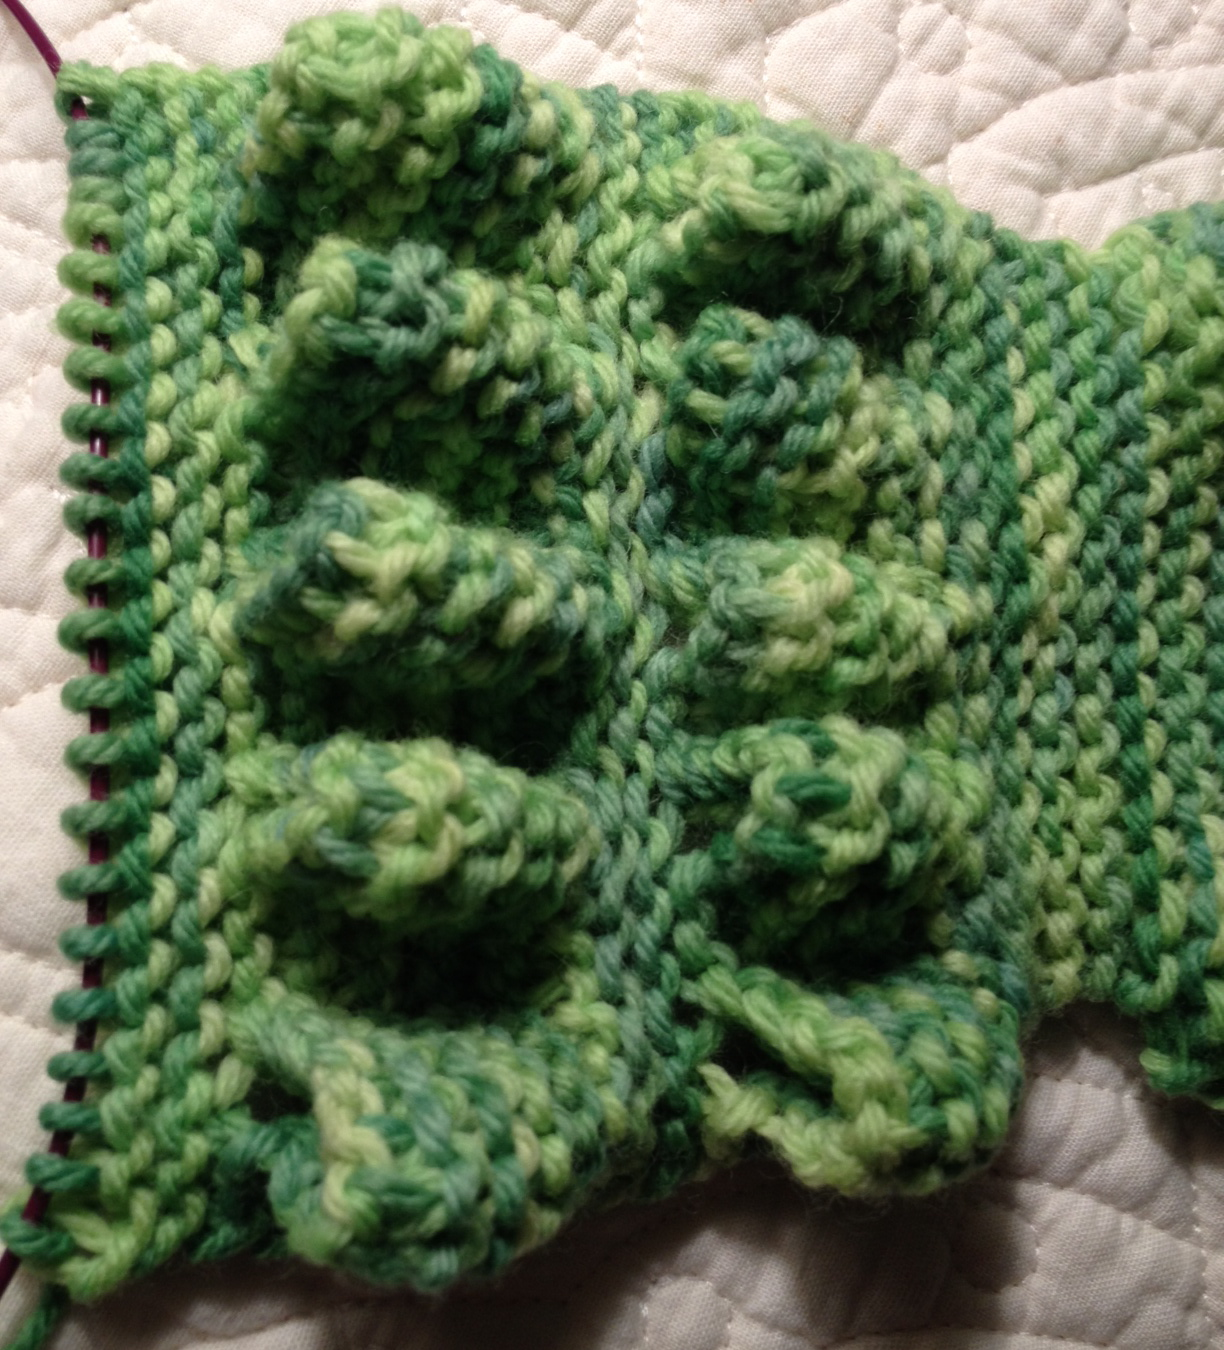 DestiKNITions: Alligator Scarf from Knitting Under the Influence of ...